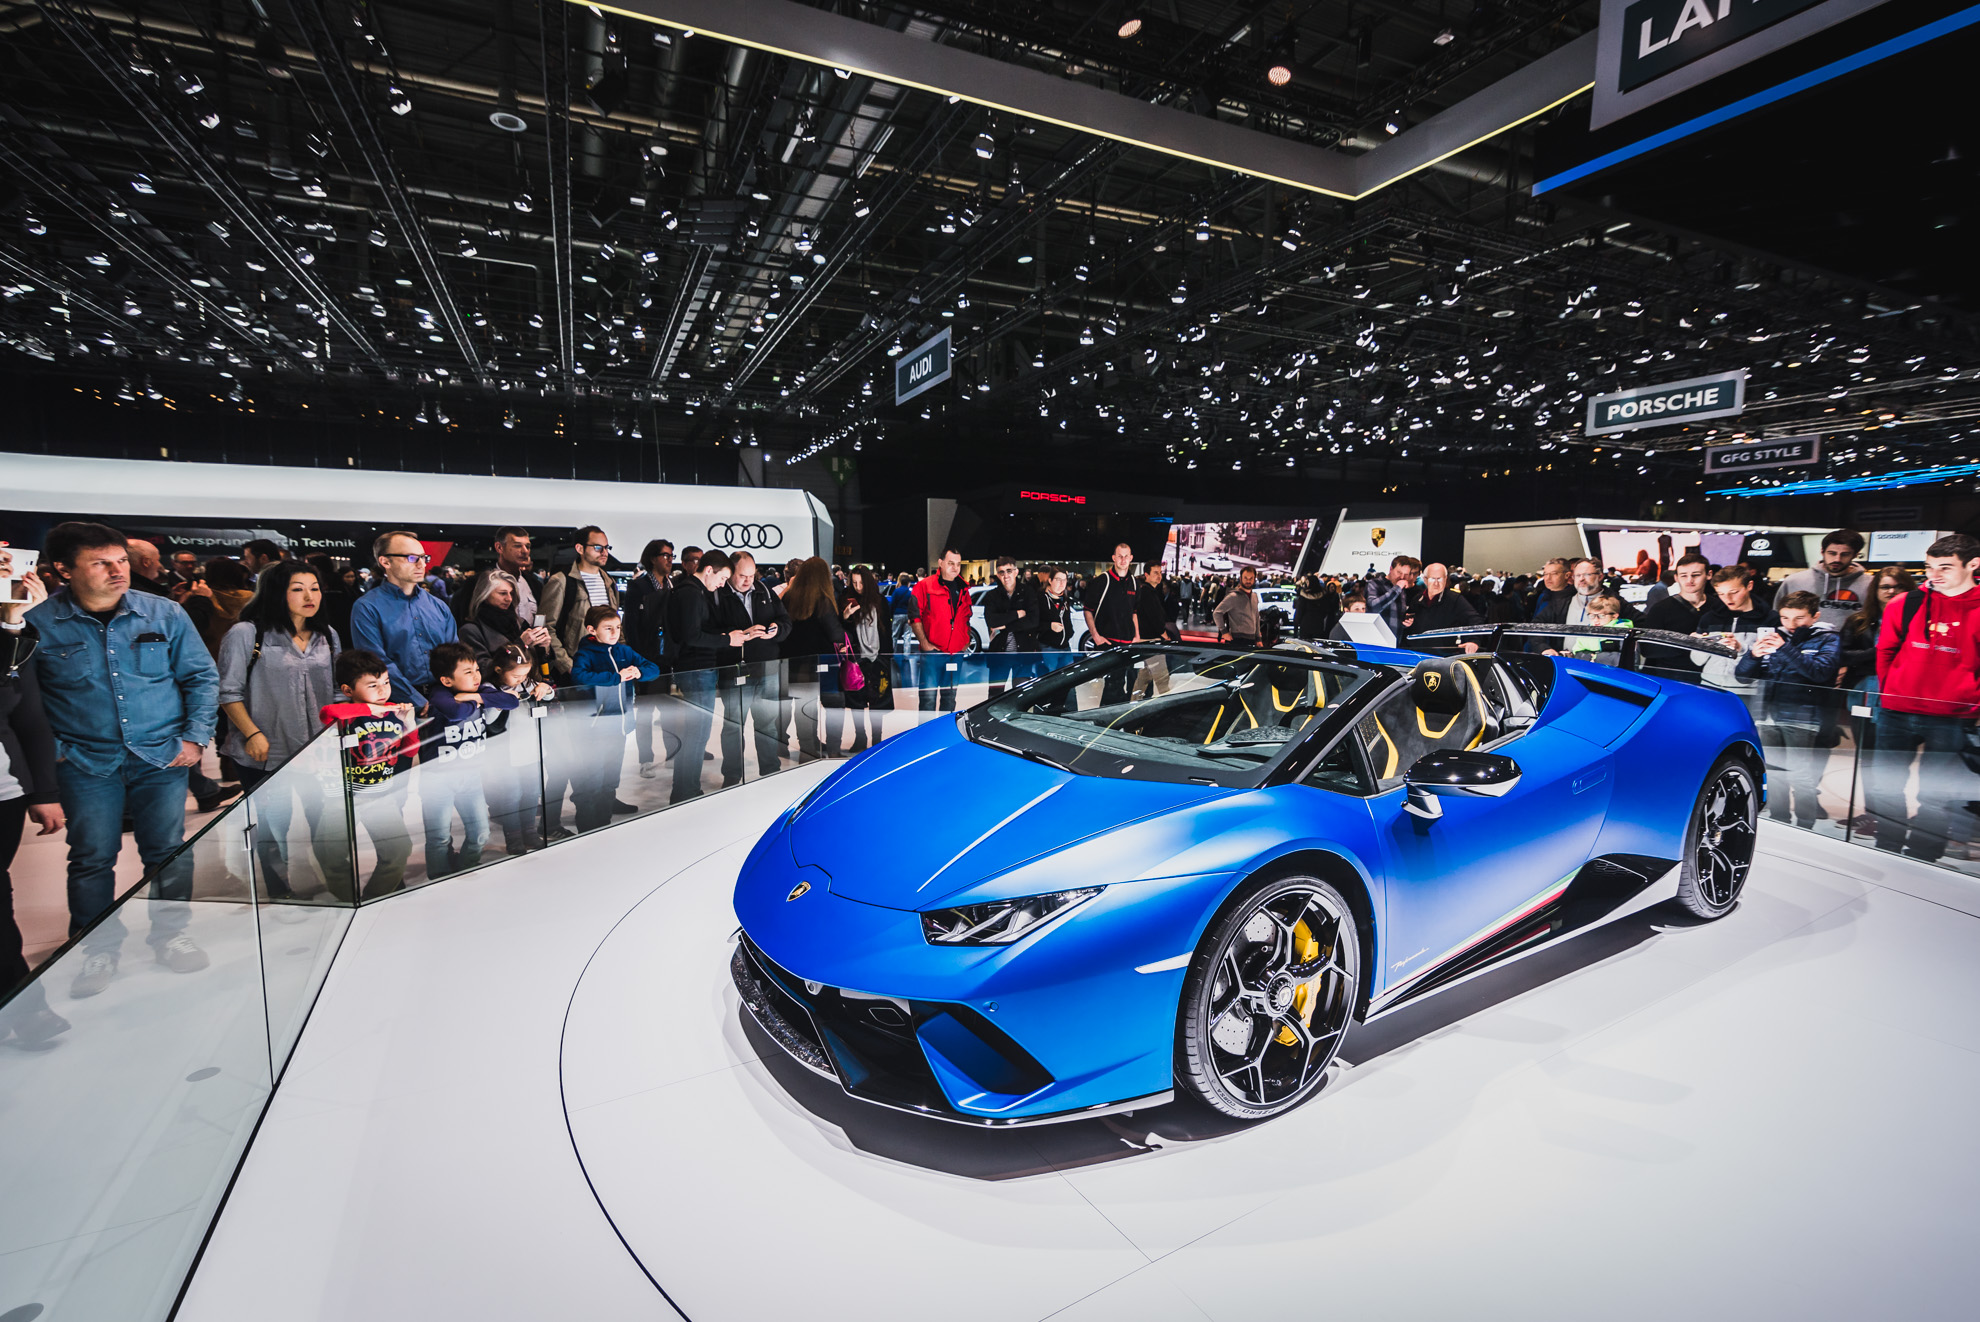 geneva-international-motor-show-igors-sinitsins-7